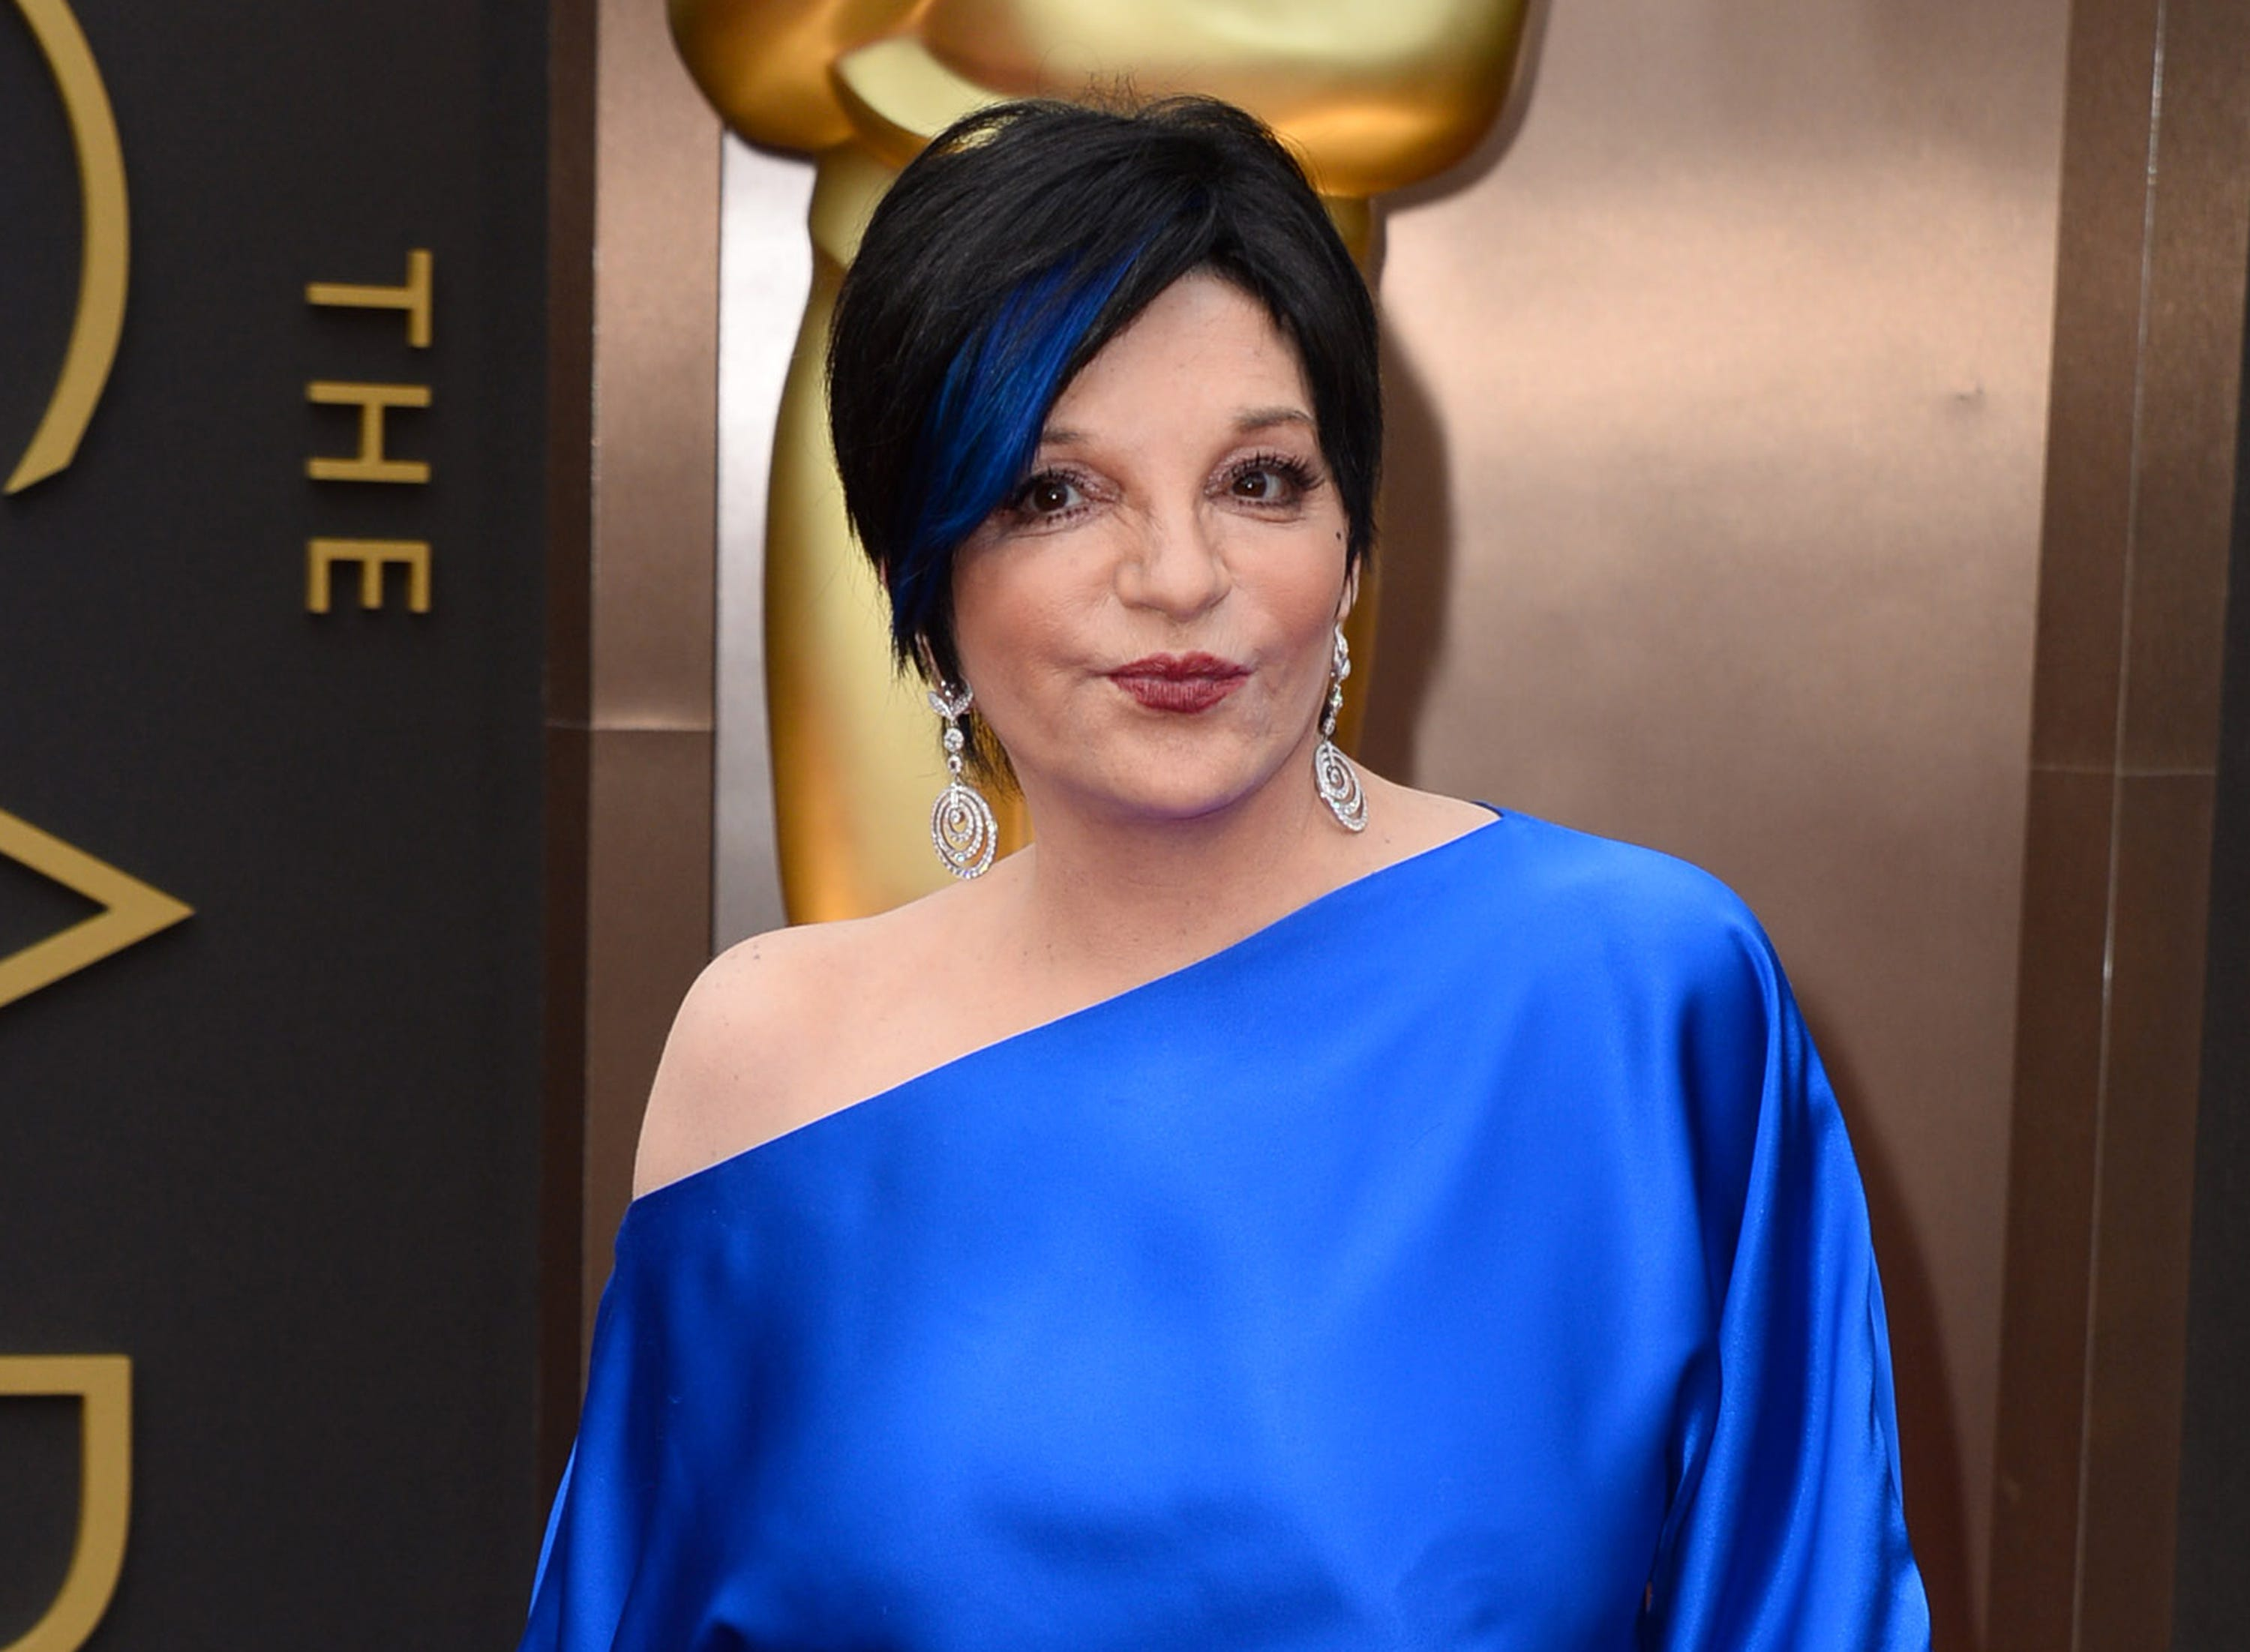 Liza Minnelli 'devastated' as she's advised to cancel all up ...